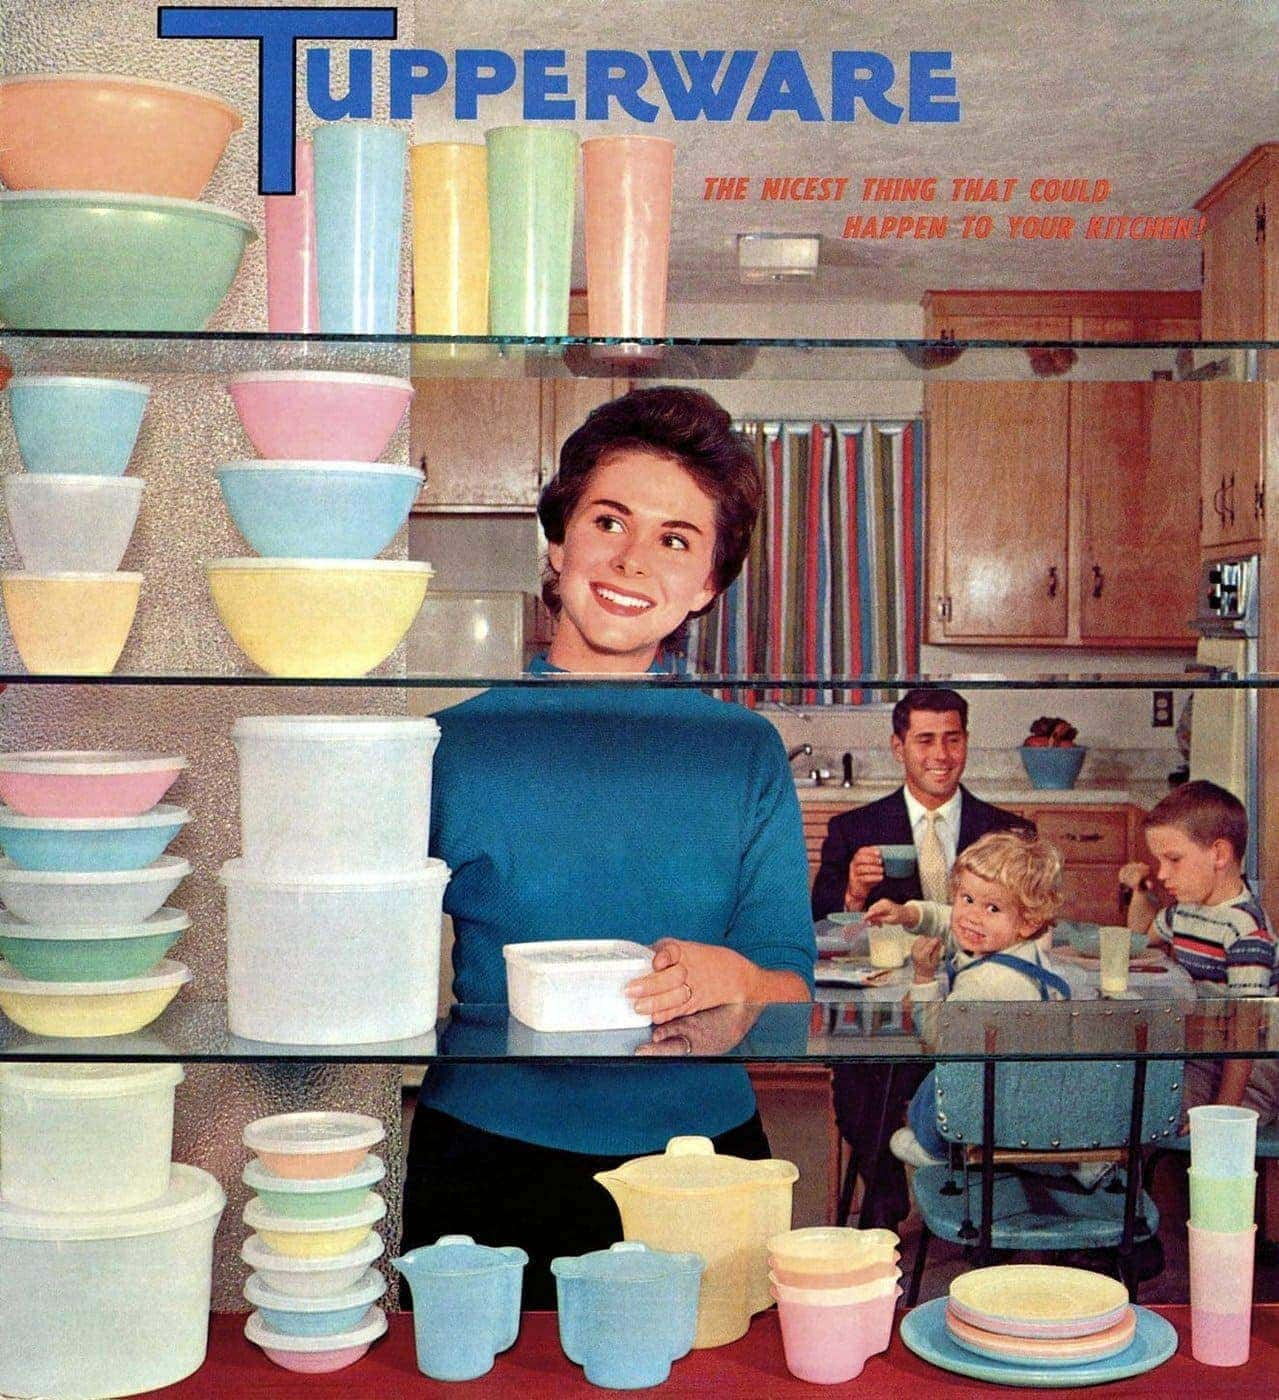 Vintage pastel Tupperware sets from the 1950s